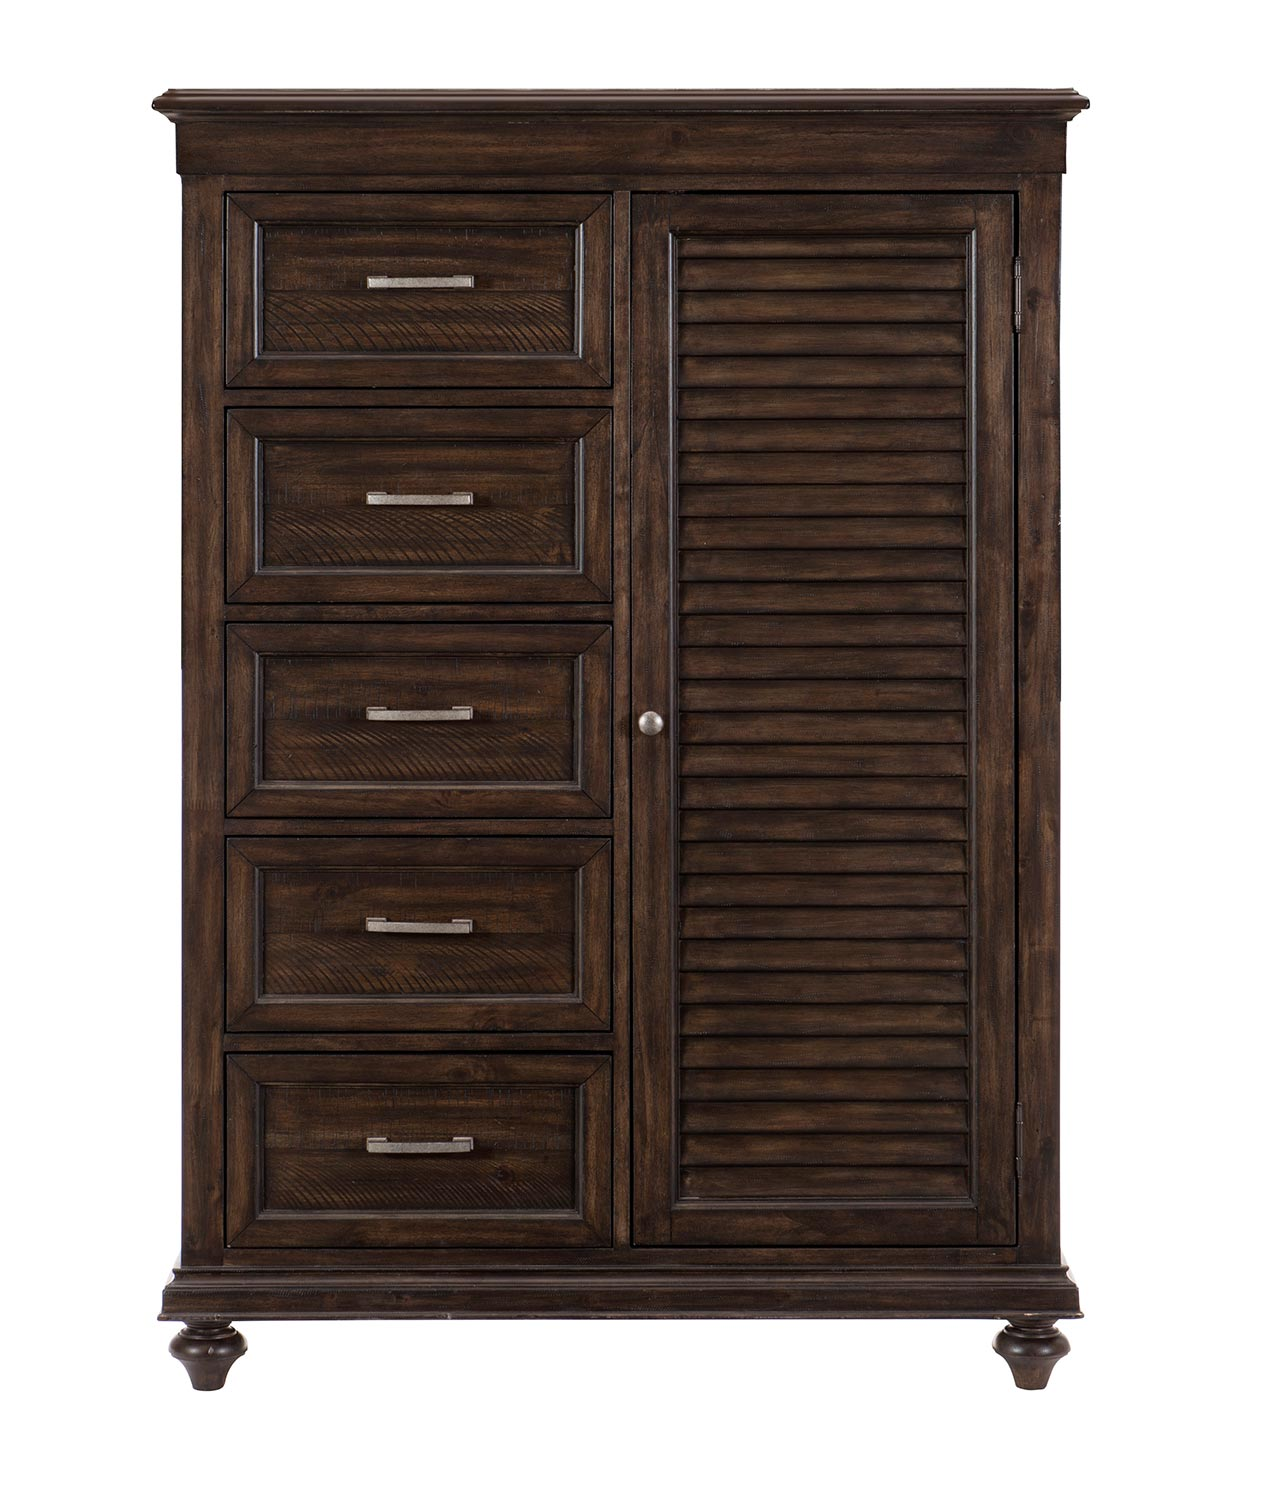 Homelegance Cardano Wardrobe Chest - Driftwood Charcoal over Acacia Solids and Veneers